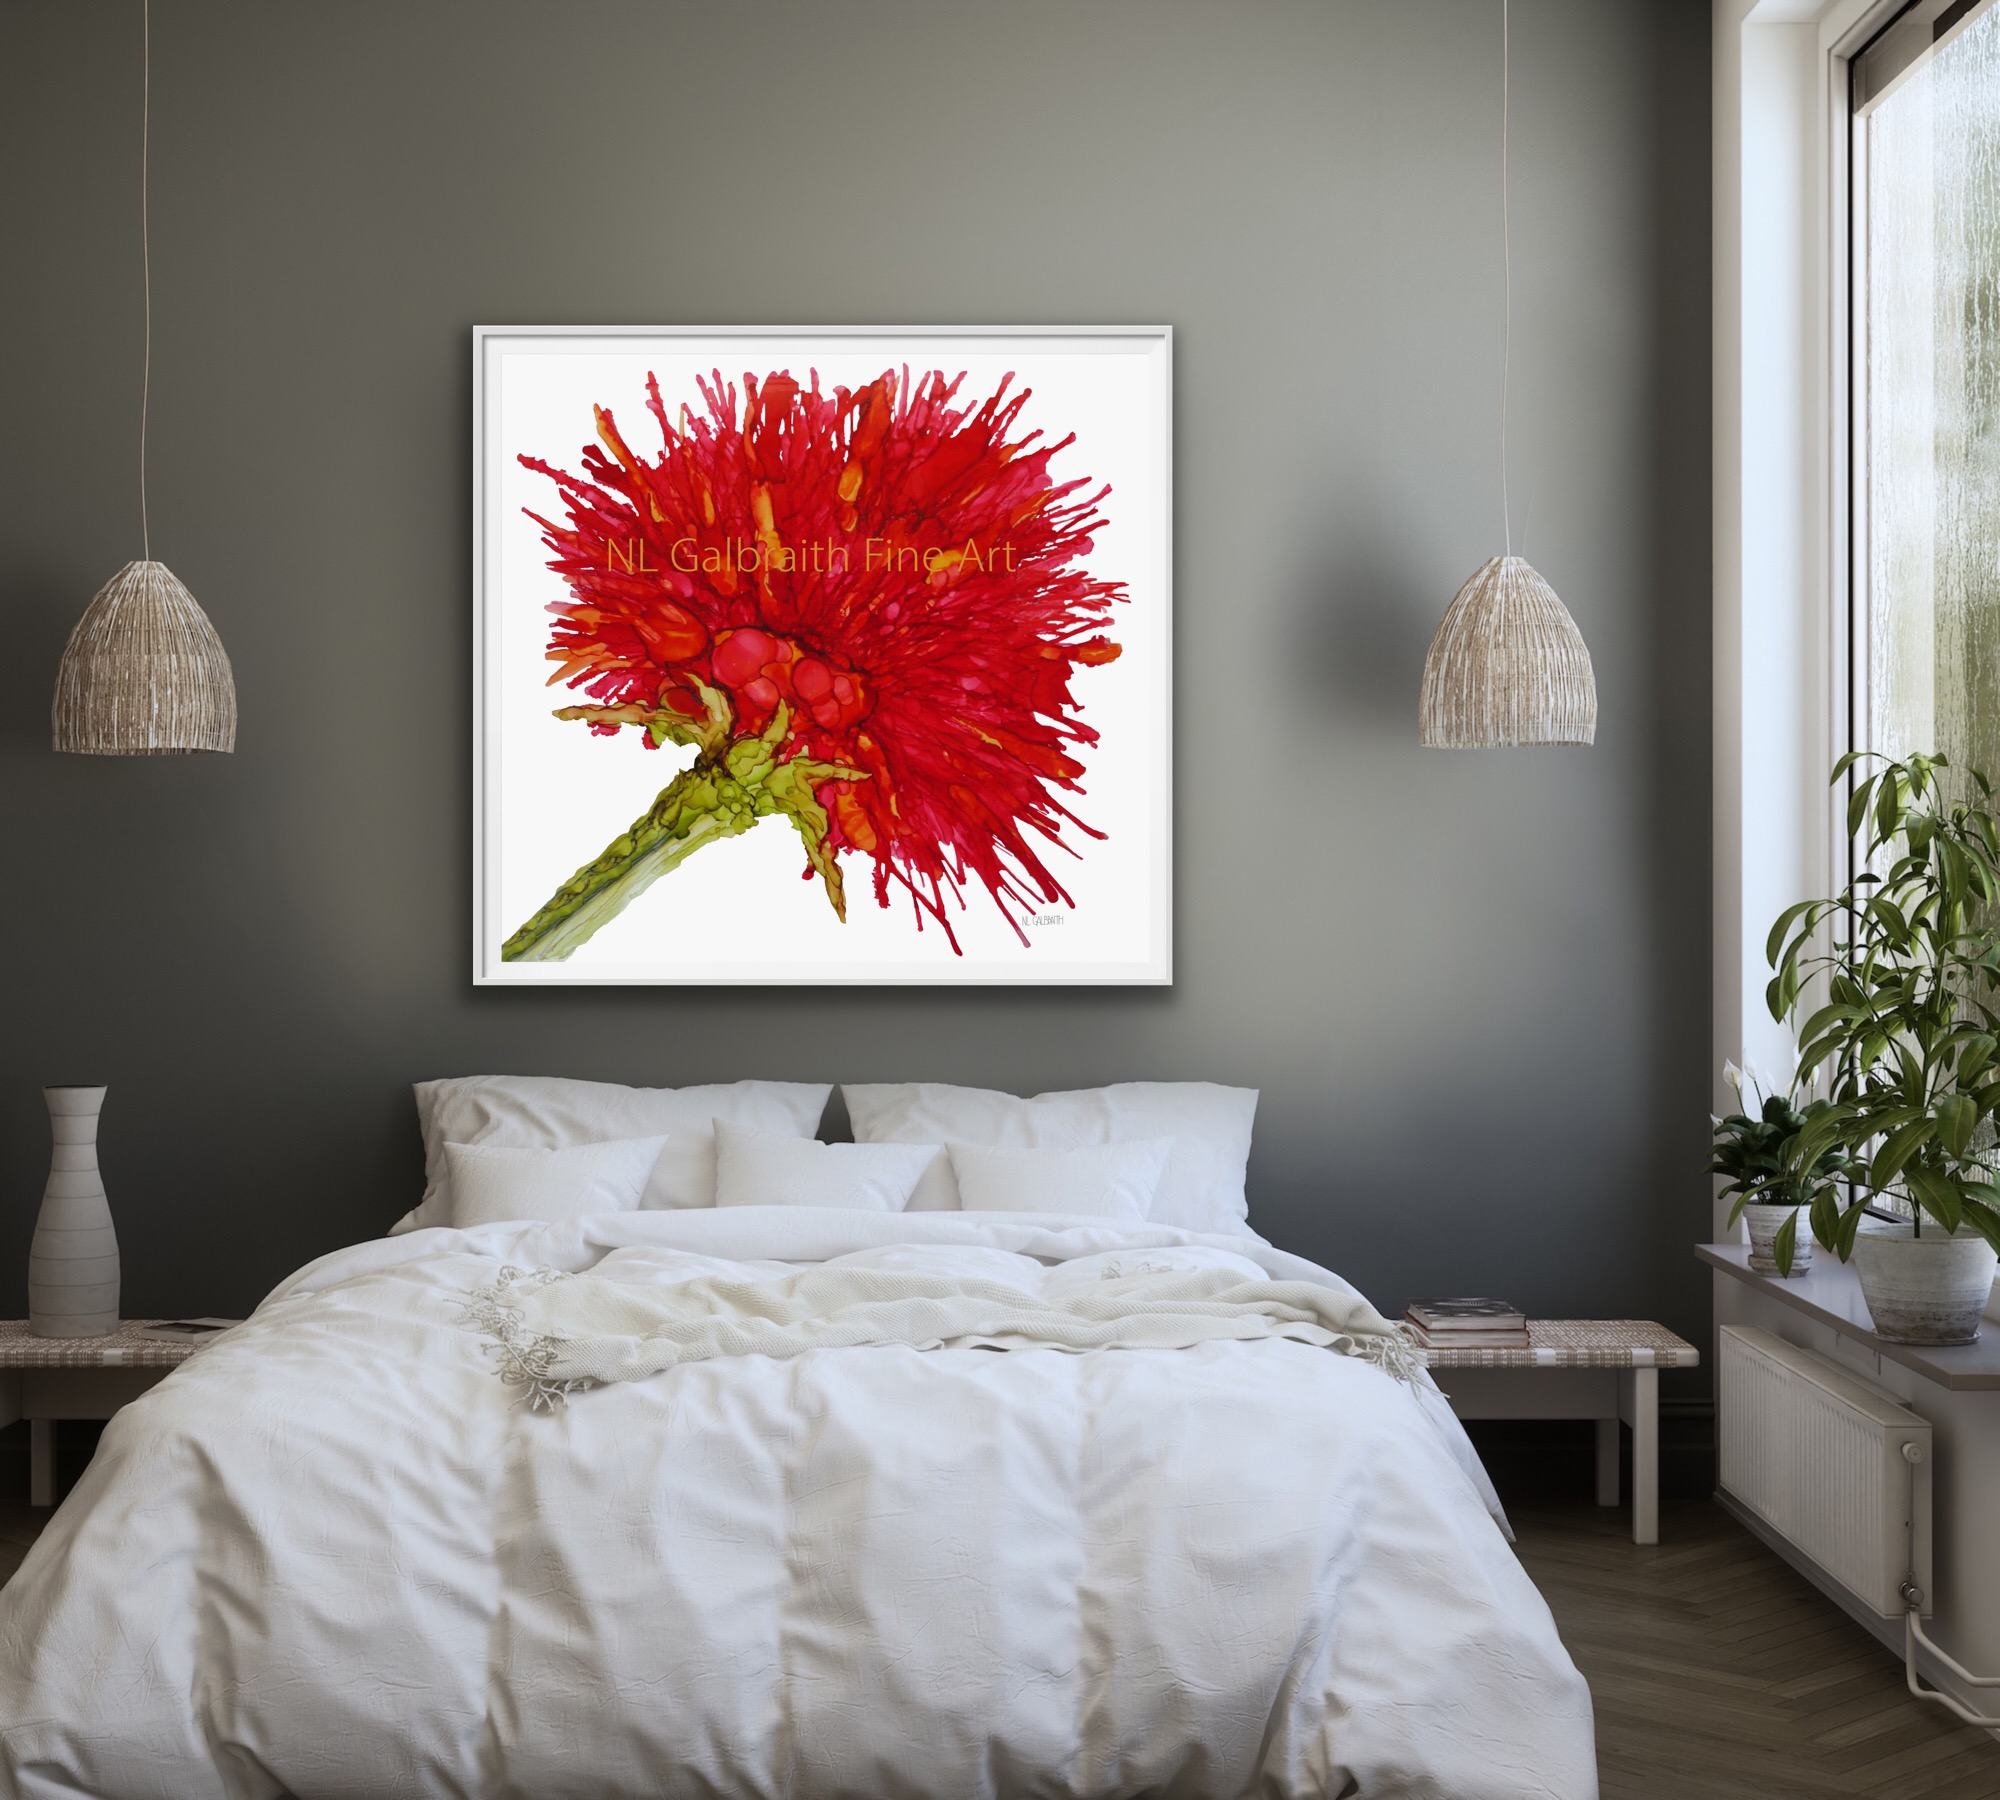 Fine Art Oversized Crimson Red Flower Graphic Over a White Bed